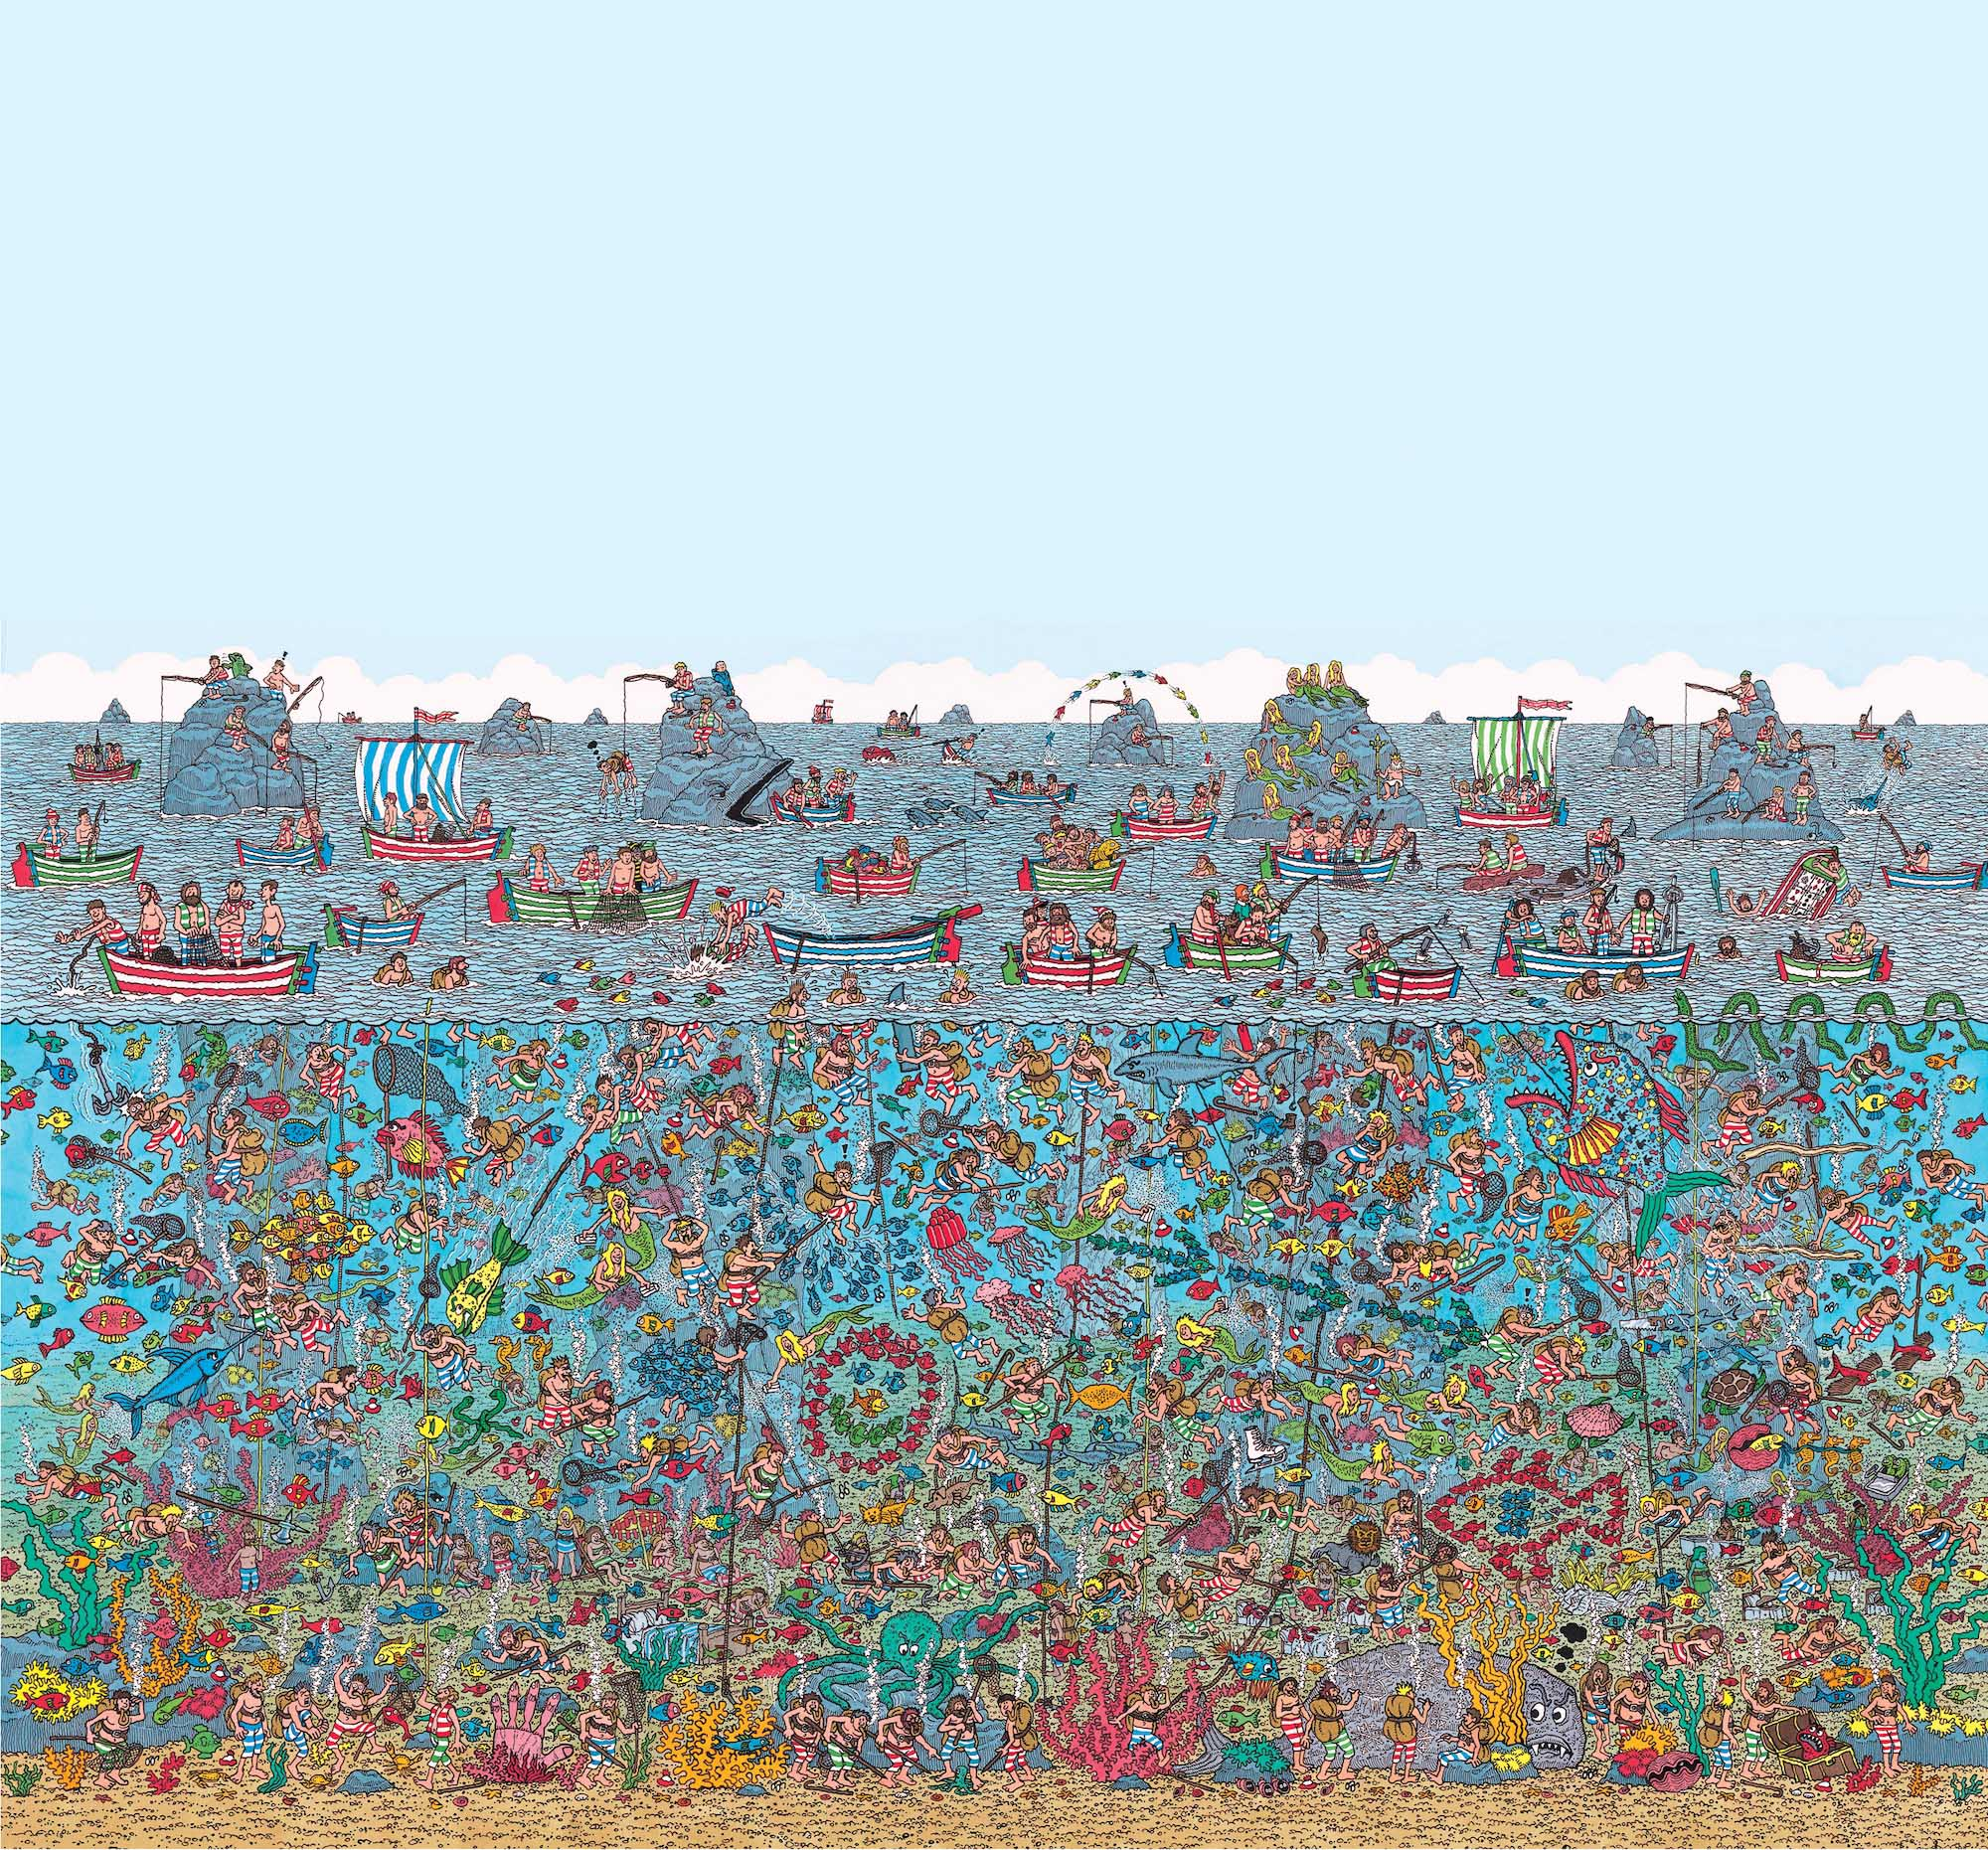 Wallpaper Mural – Where's Wally Deep Sea